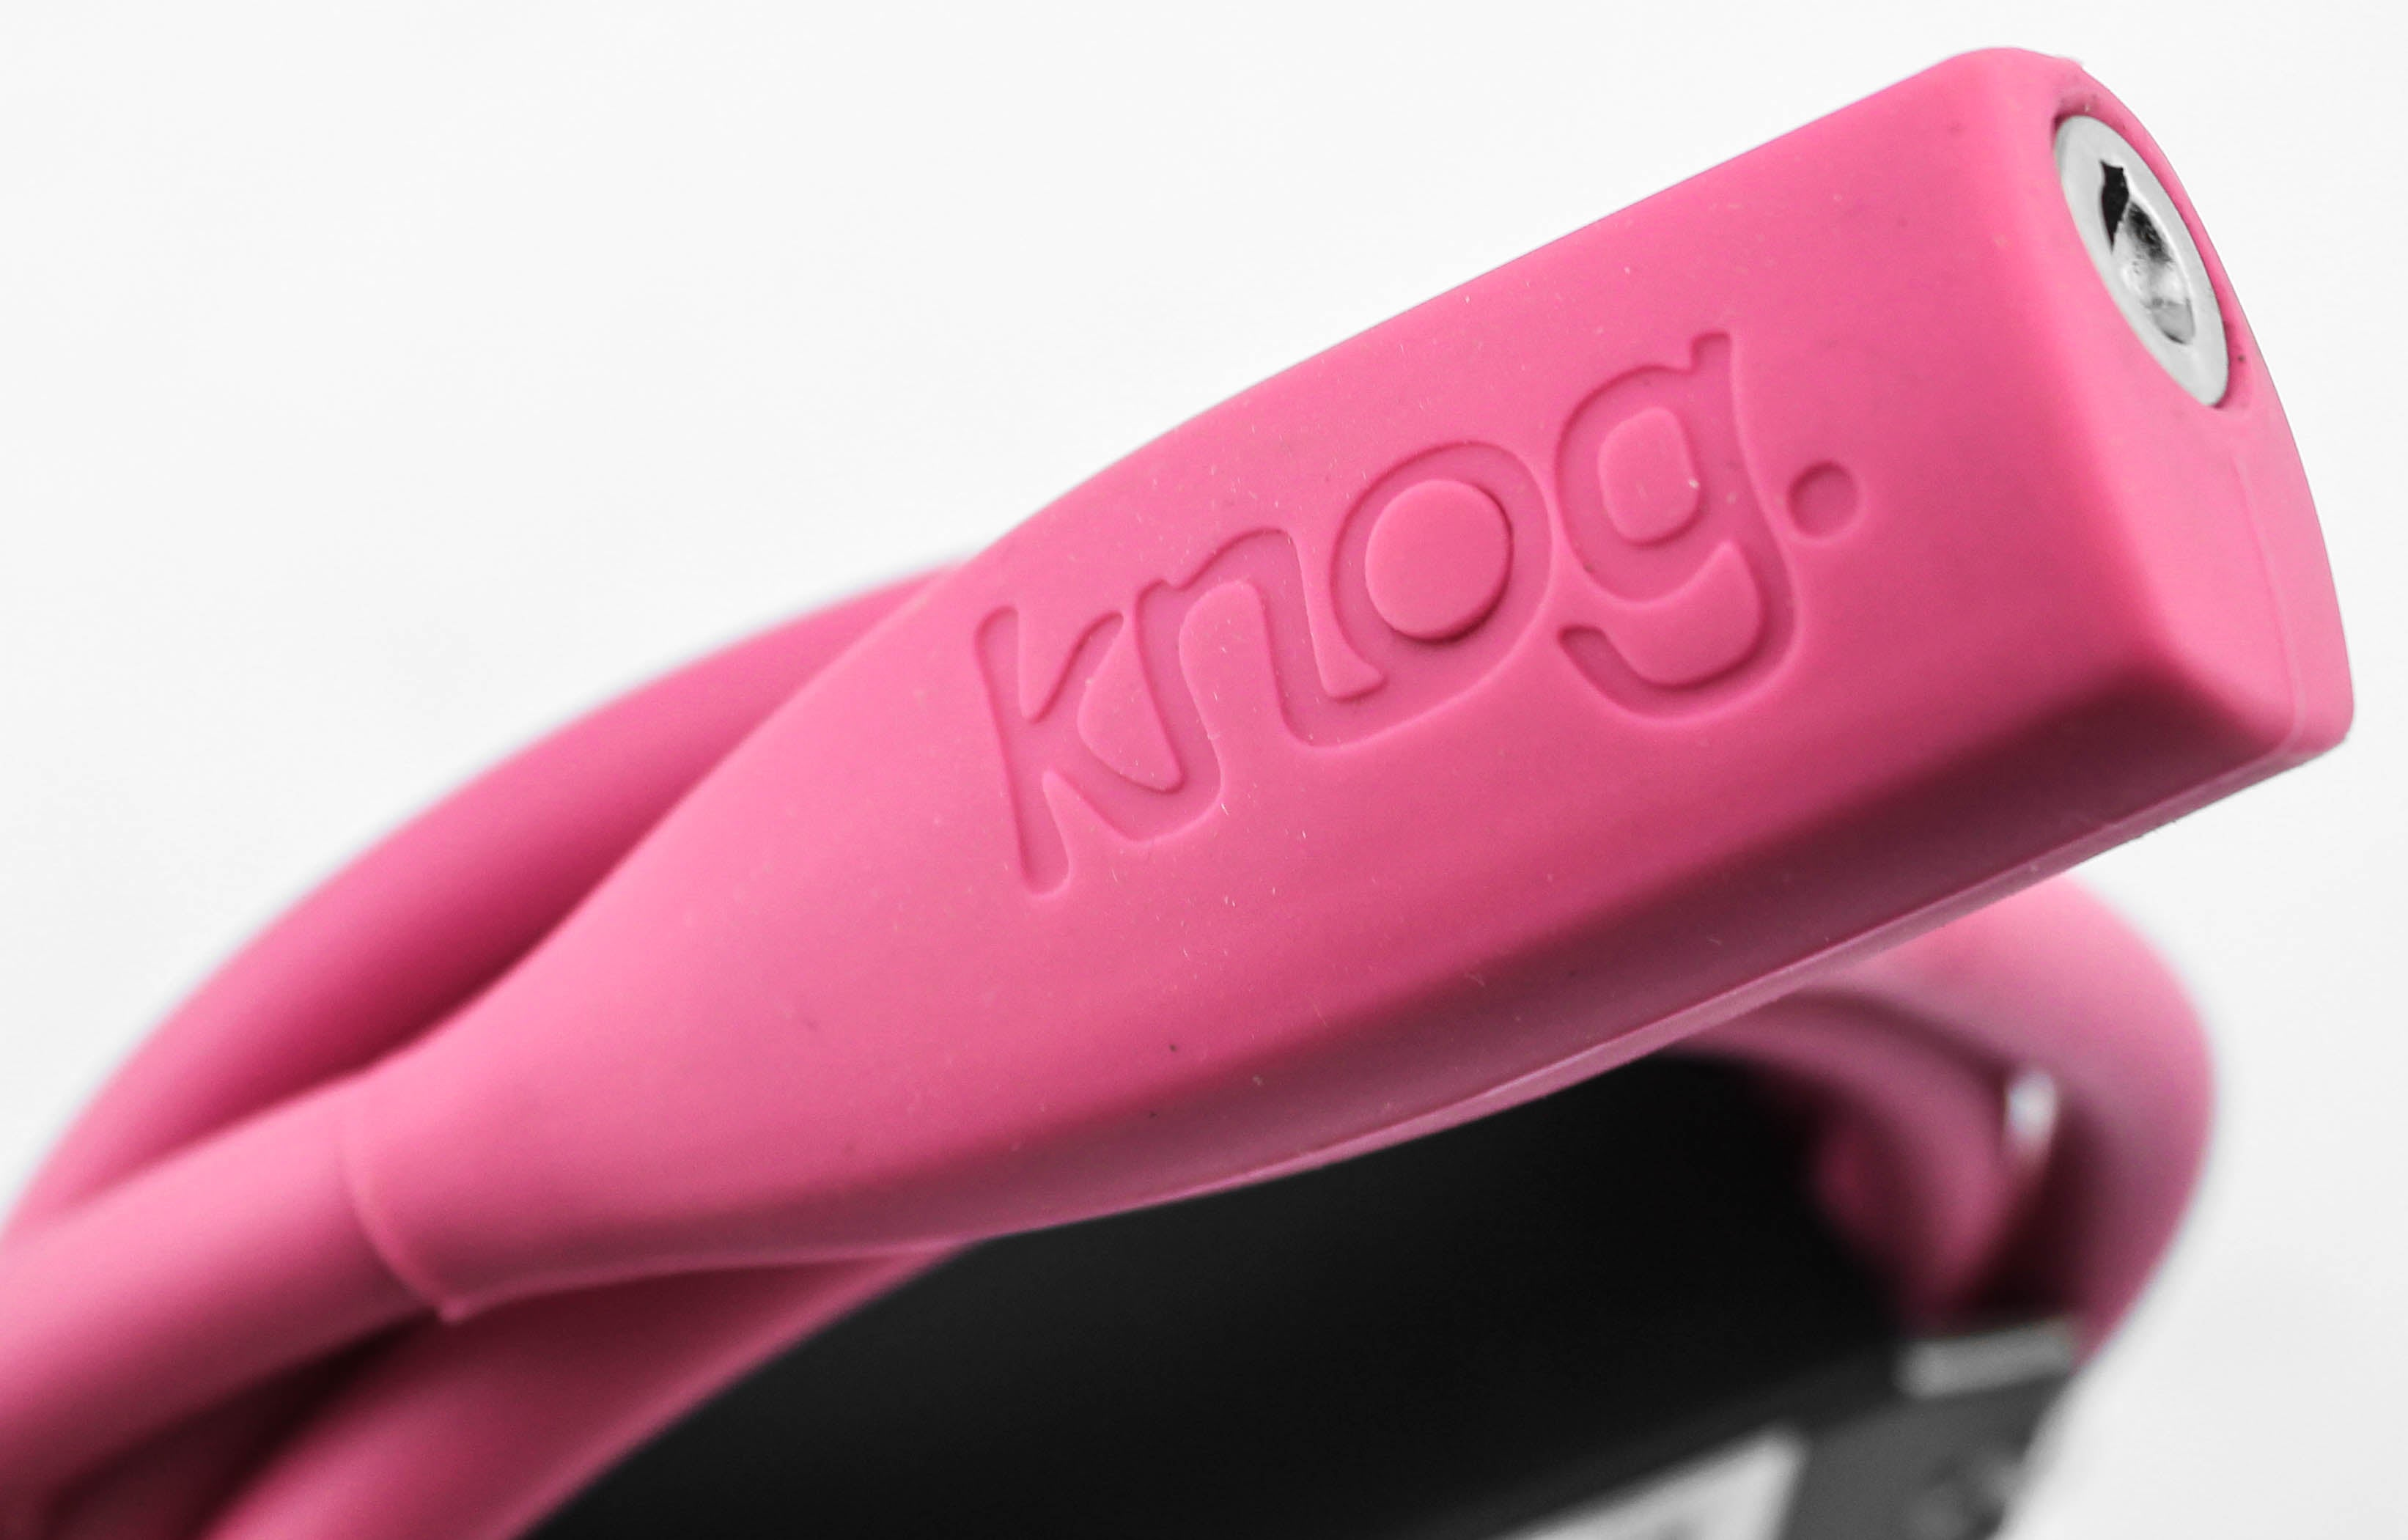 Knog Party Coil 1300mm Coiled Cable Bike Lock Braided Steel Rose Pink NEW